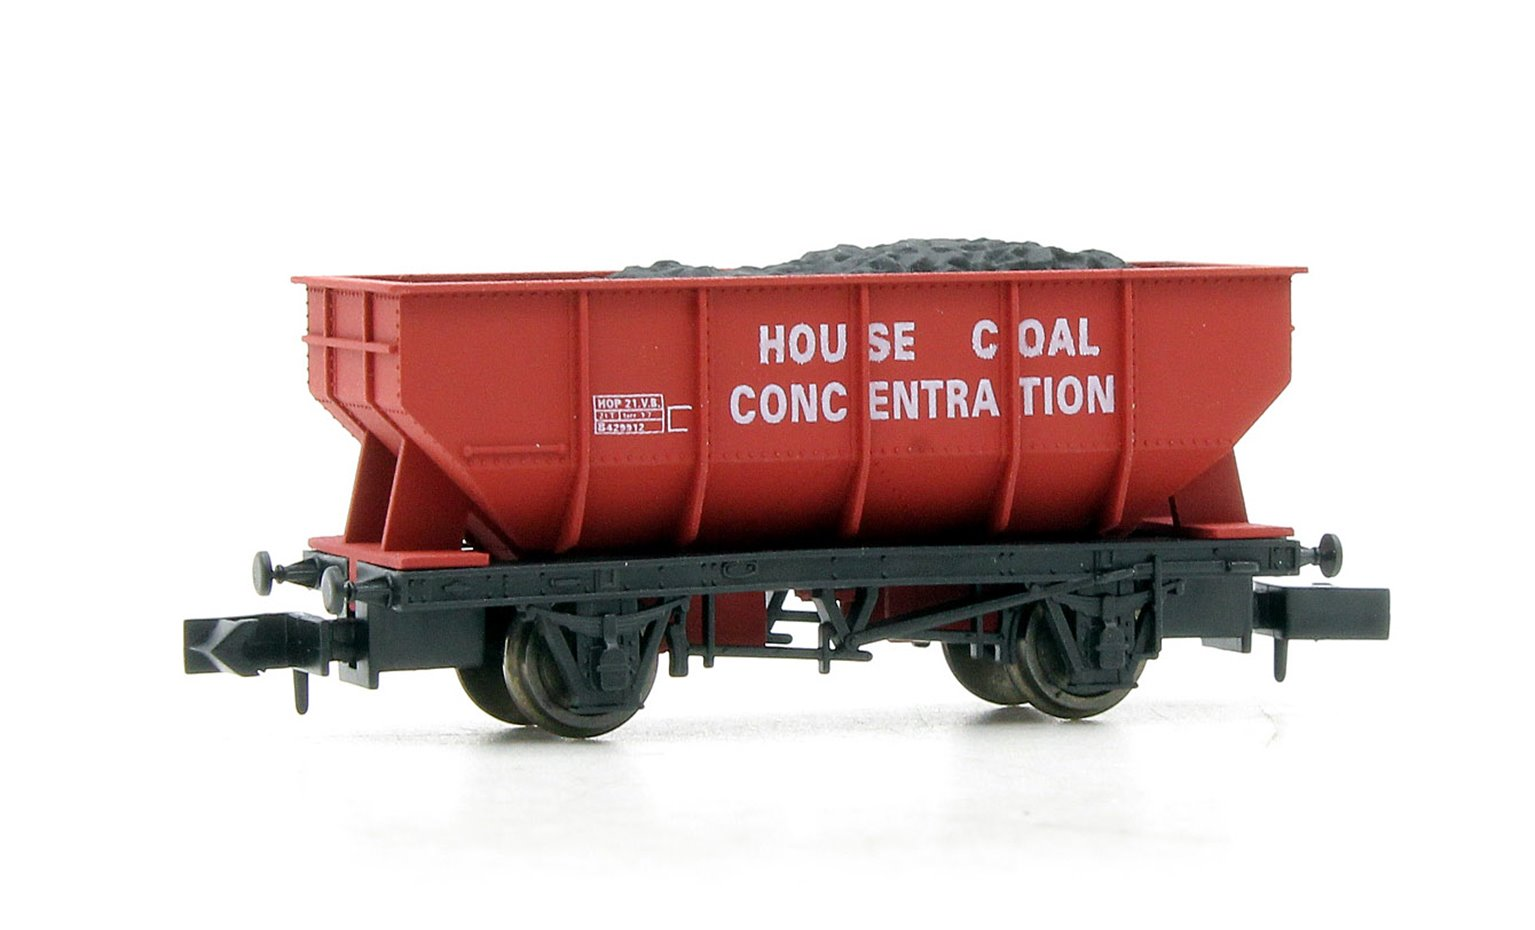 Dapol 2F-034-055 21-ton hopper B429912 in House Coal concentration livery